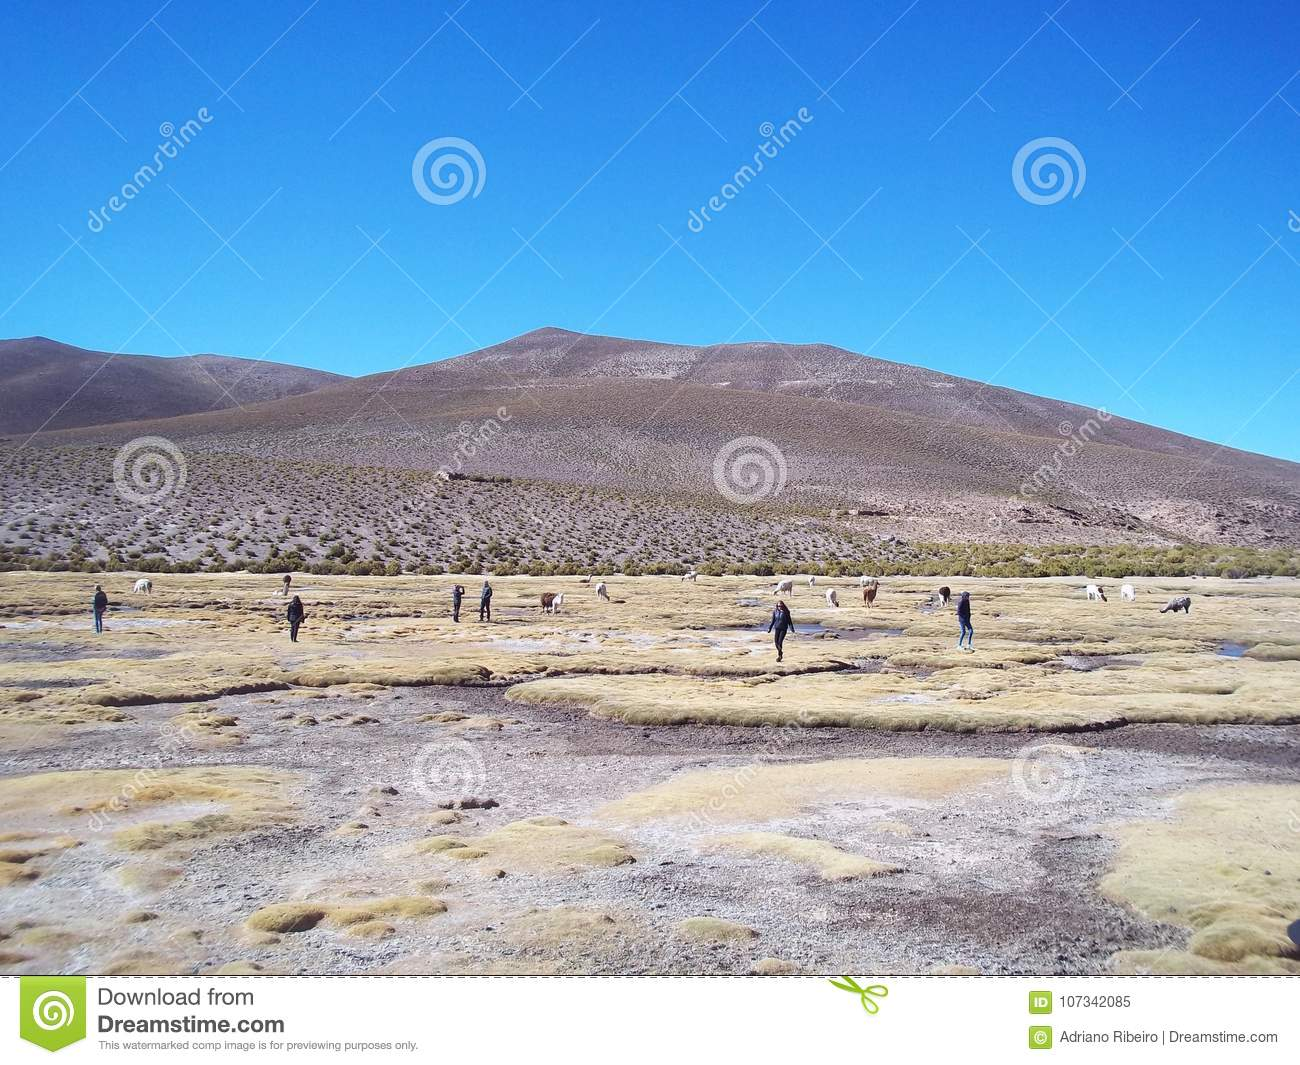 Tourists contemplating beautiful desert landscapes of the Bolivian altiplano